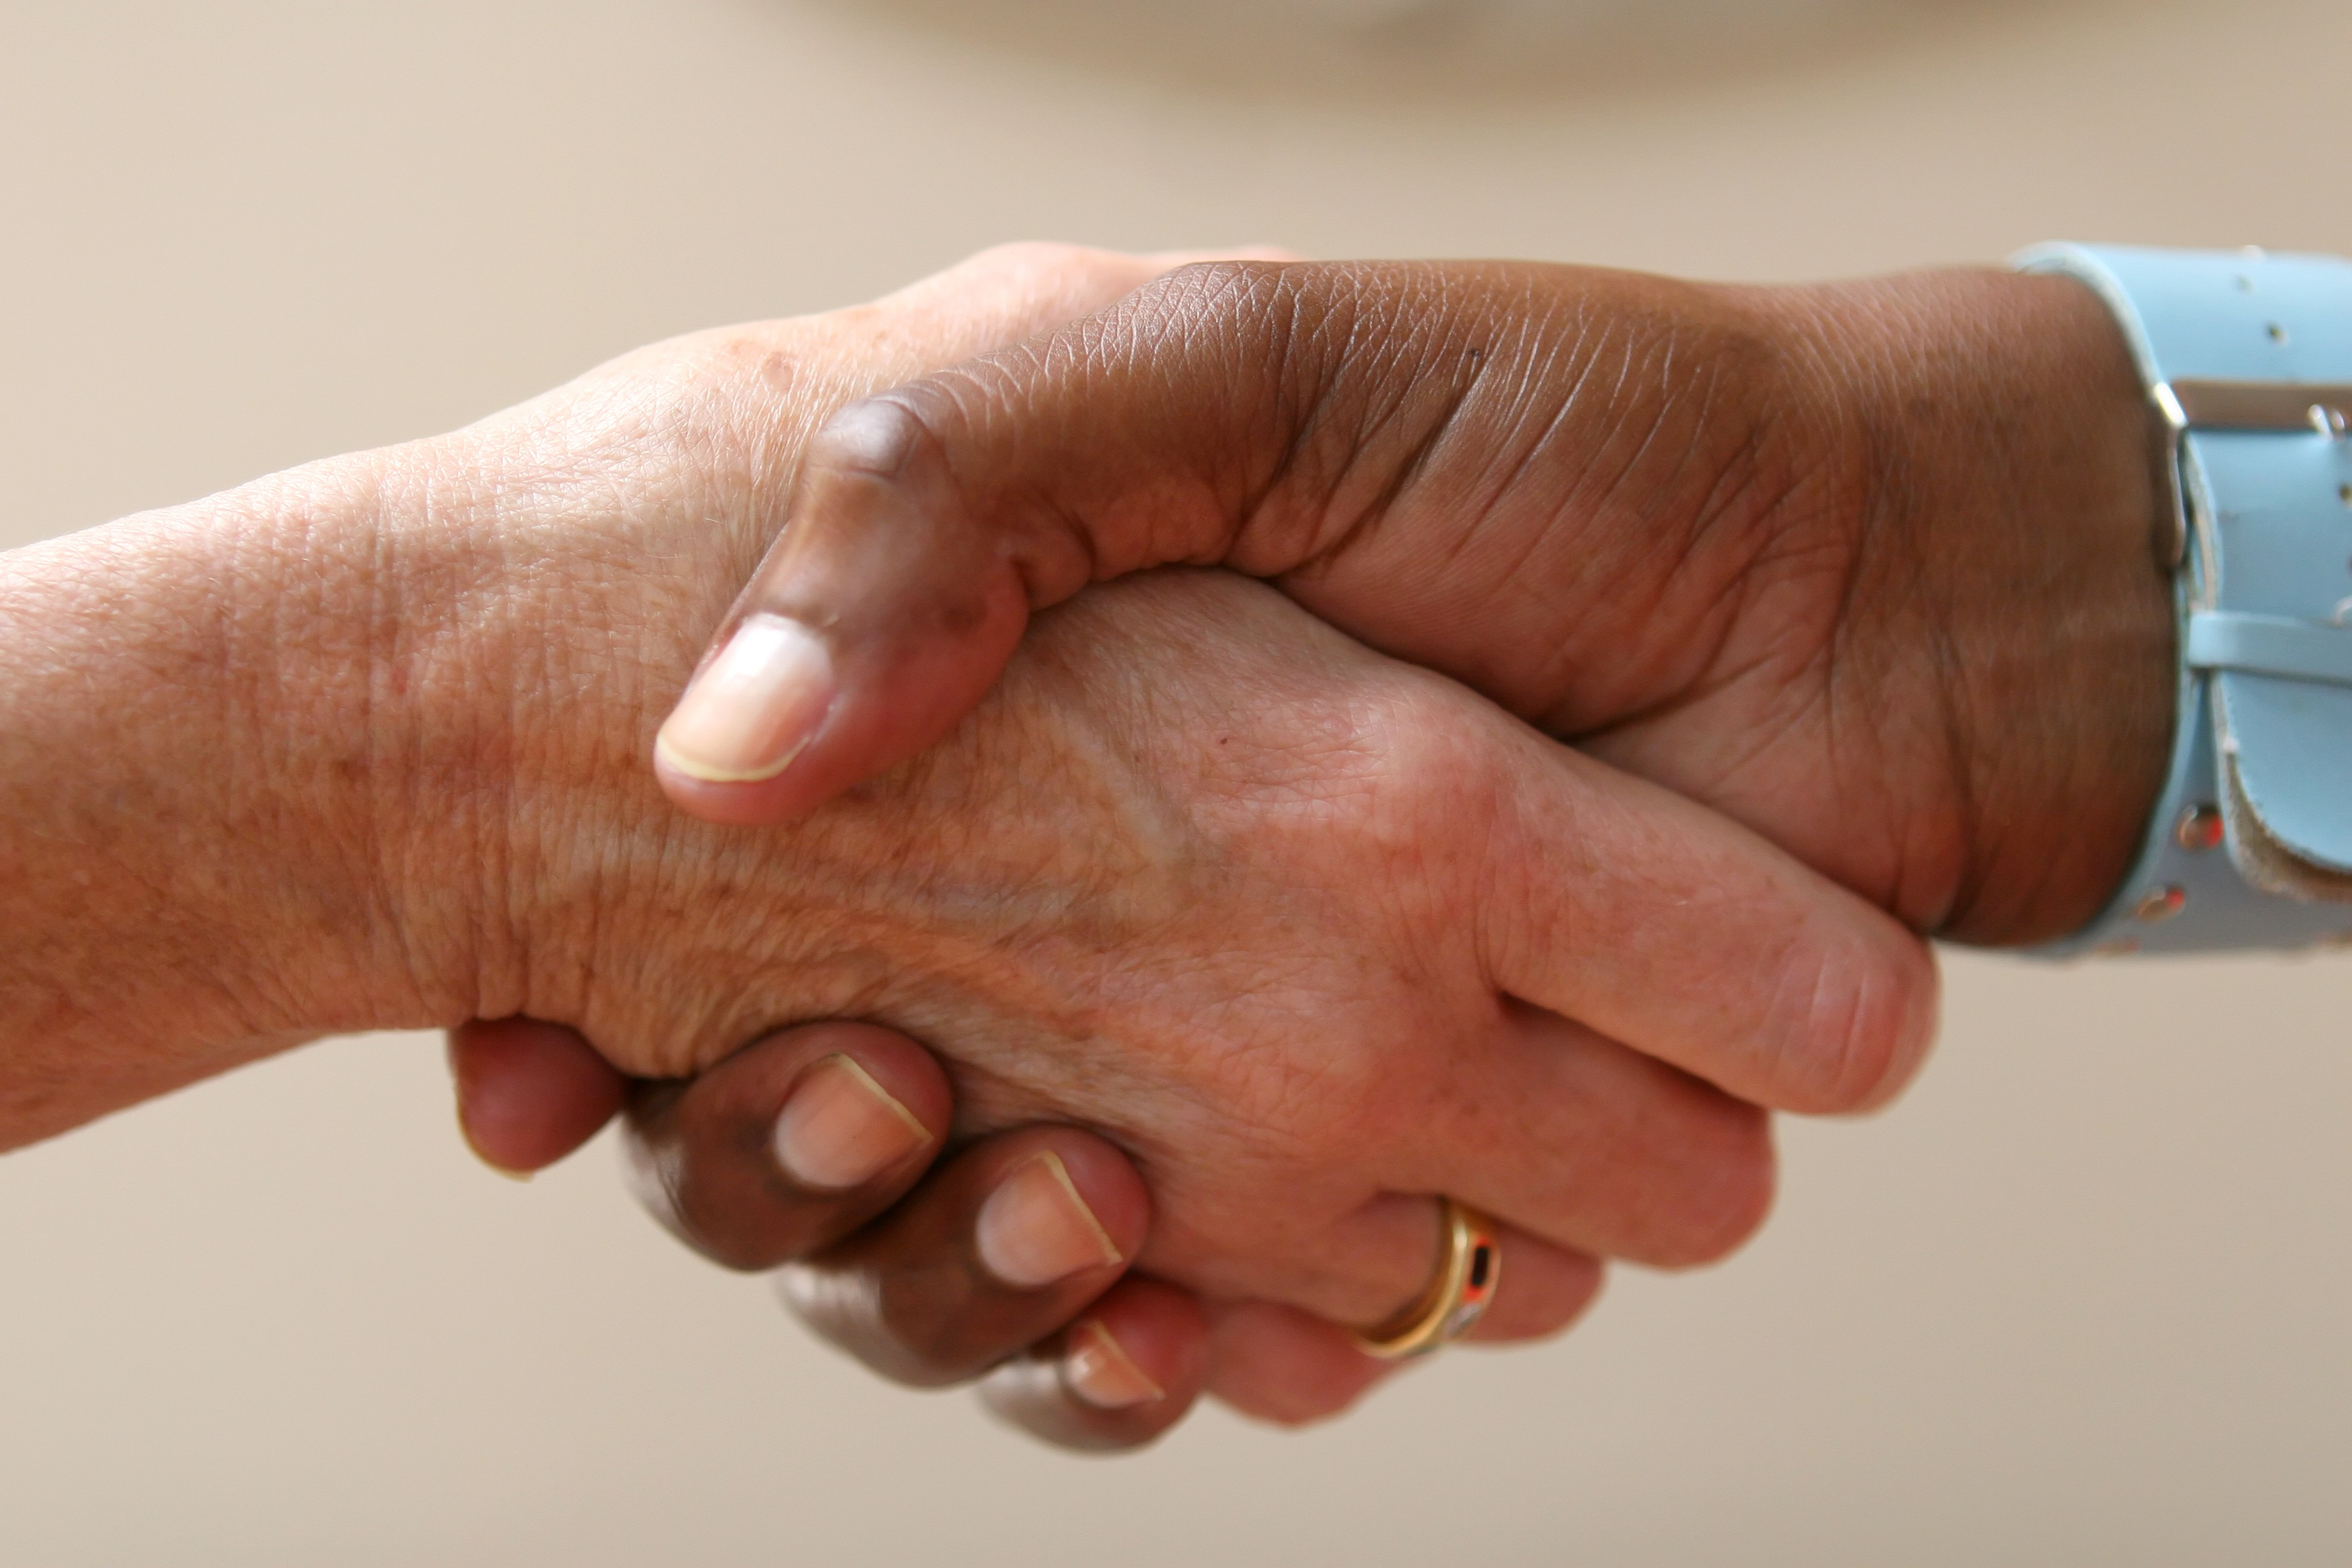 shaking hands in a gesture of help